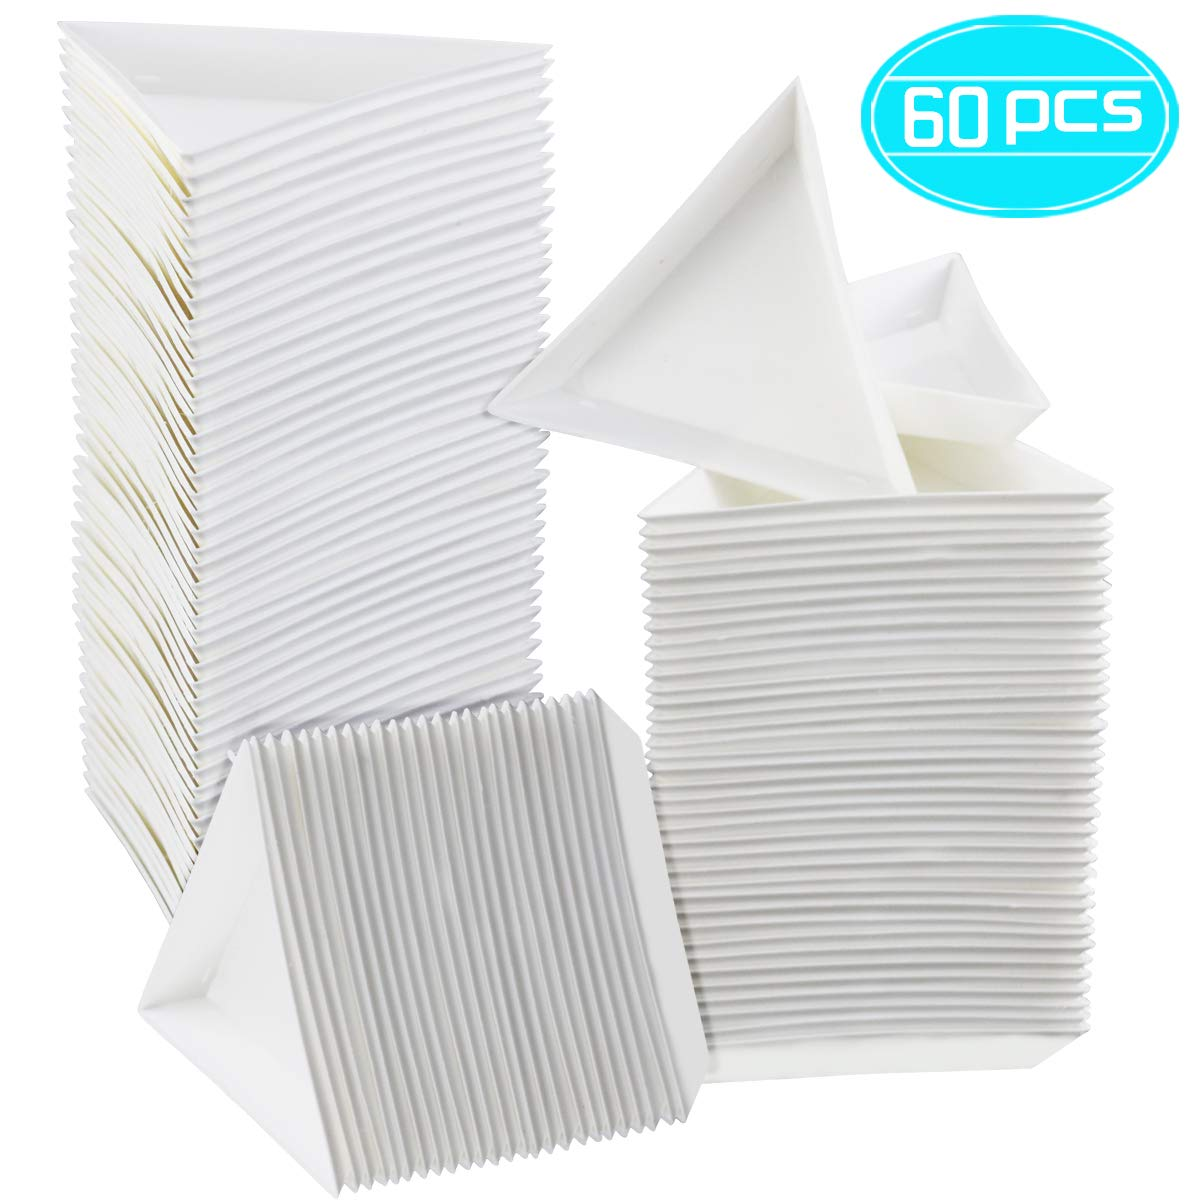 Faxco 60 PCS Plastic White Triangle Sorting Trays Painting Pigment Tray Triangle Beads Plate Plastic Art Storage Plate Jewellery Triangle Tray